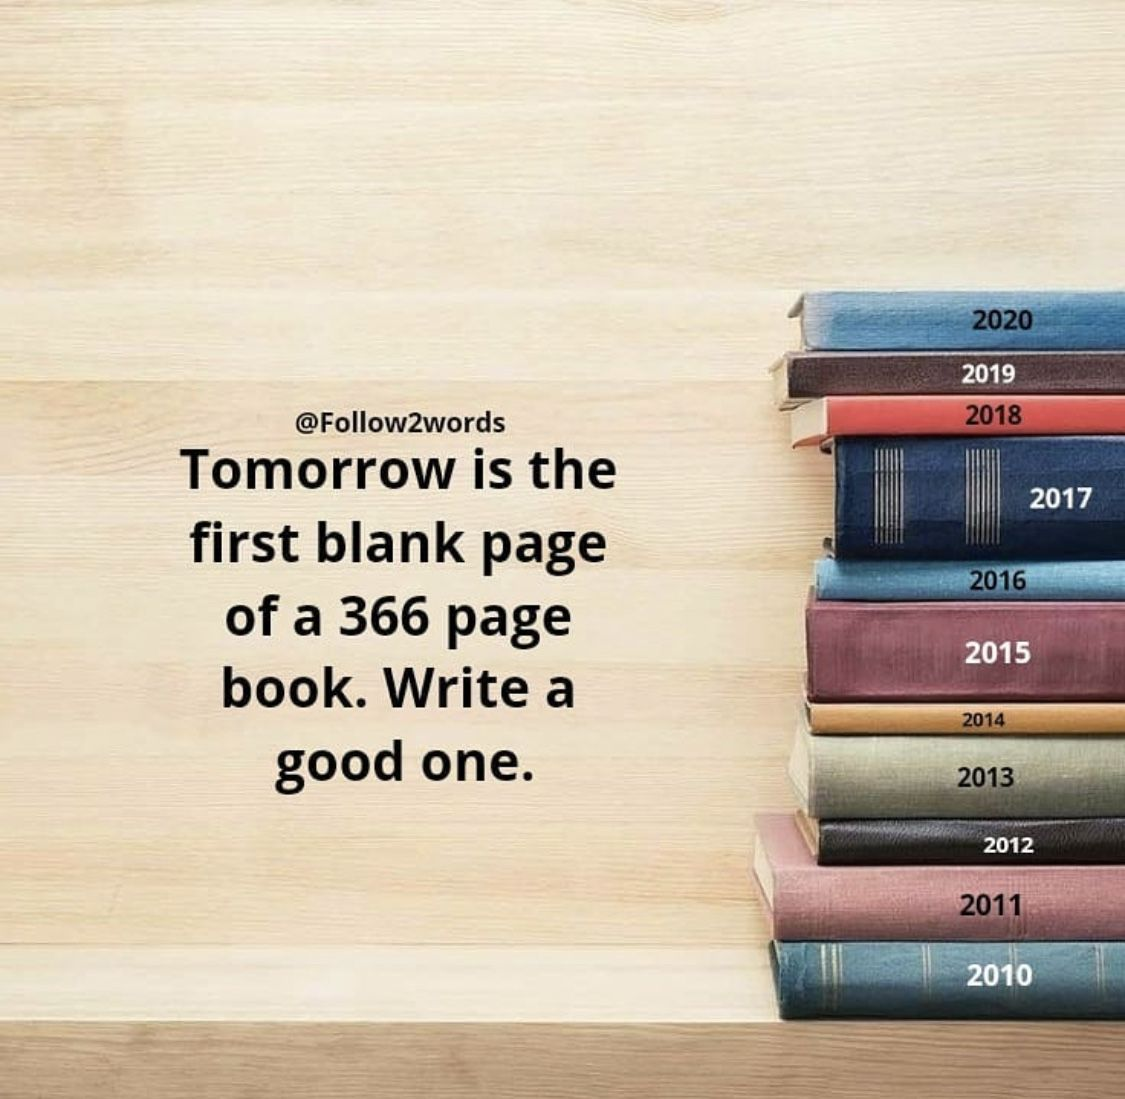 I liked this one. Make every day...every word...count. Write a good one. #HappyNewYear2019